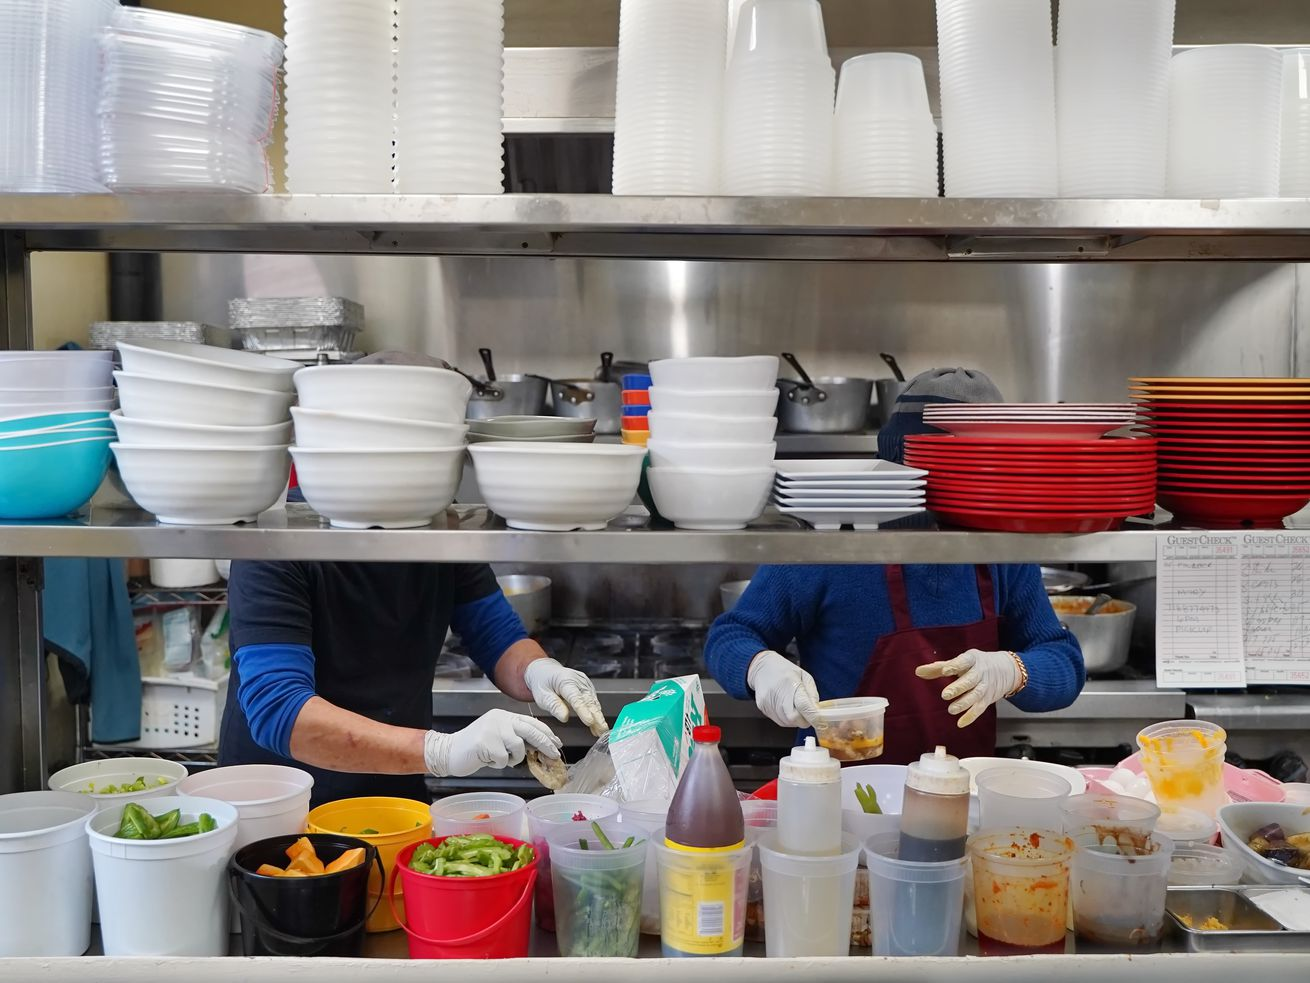 Two cooks wearing gloves in the kitchen